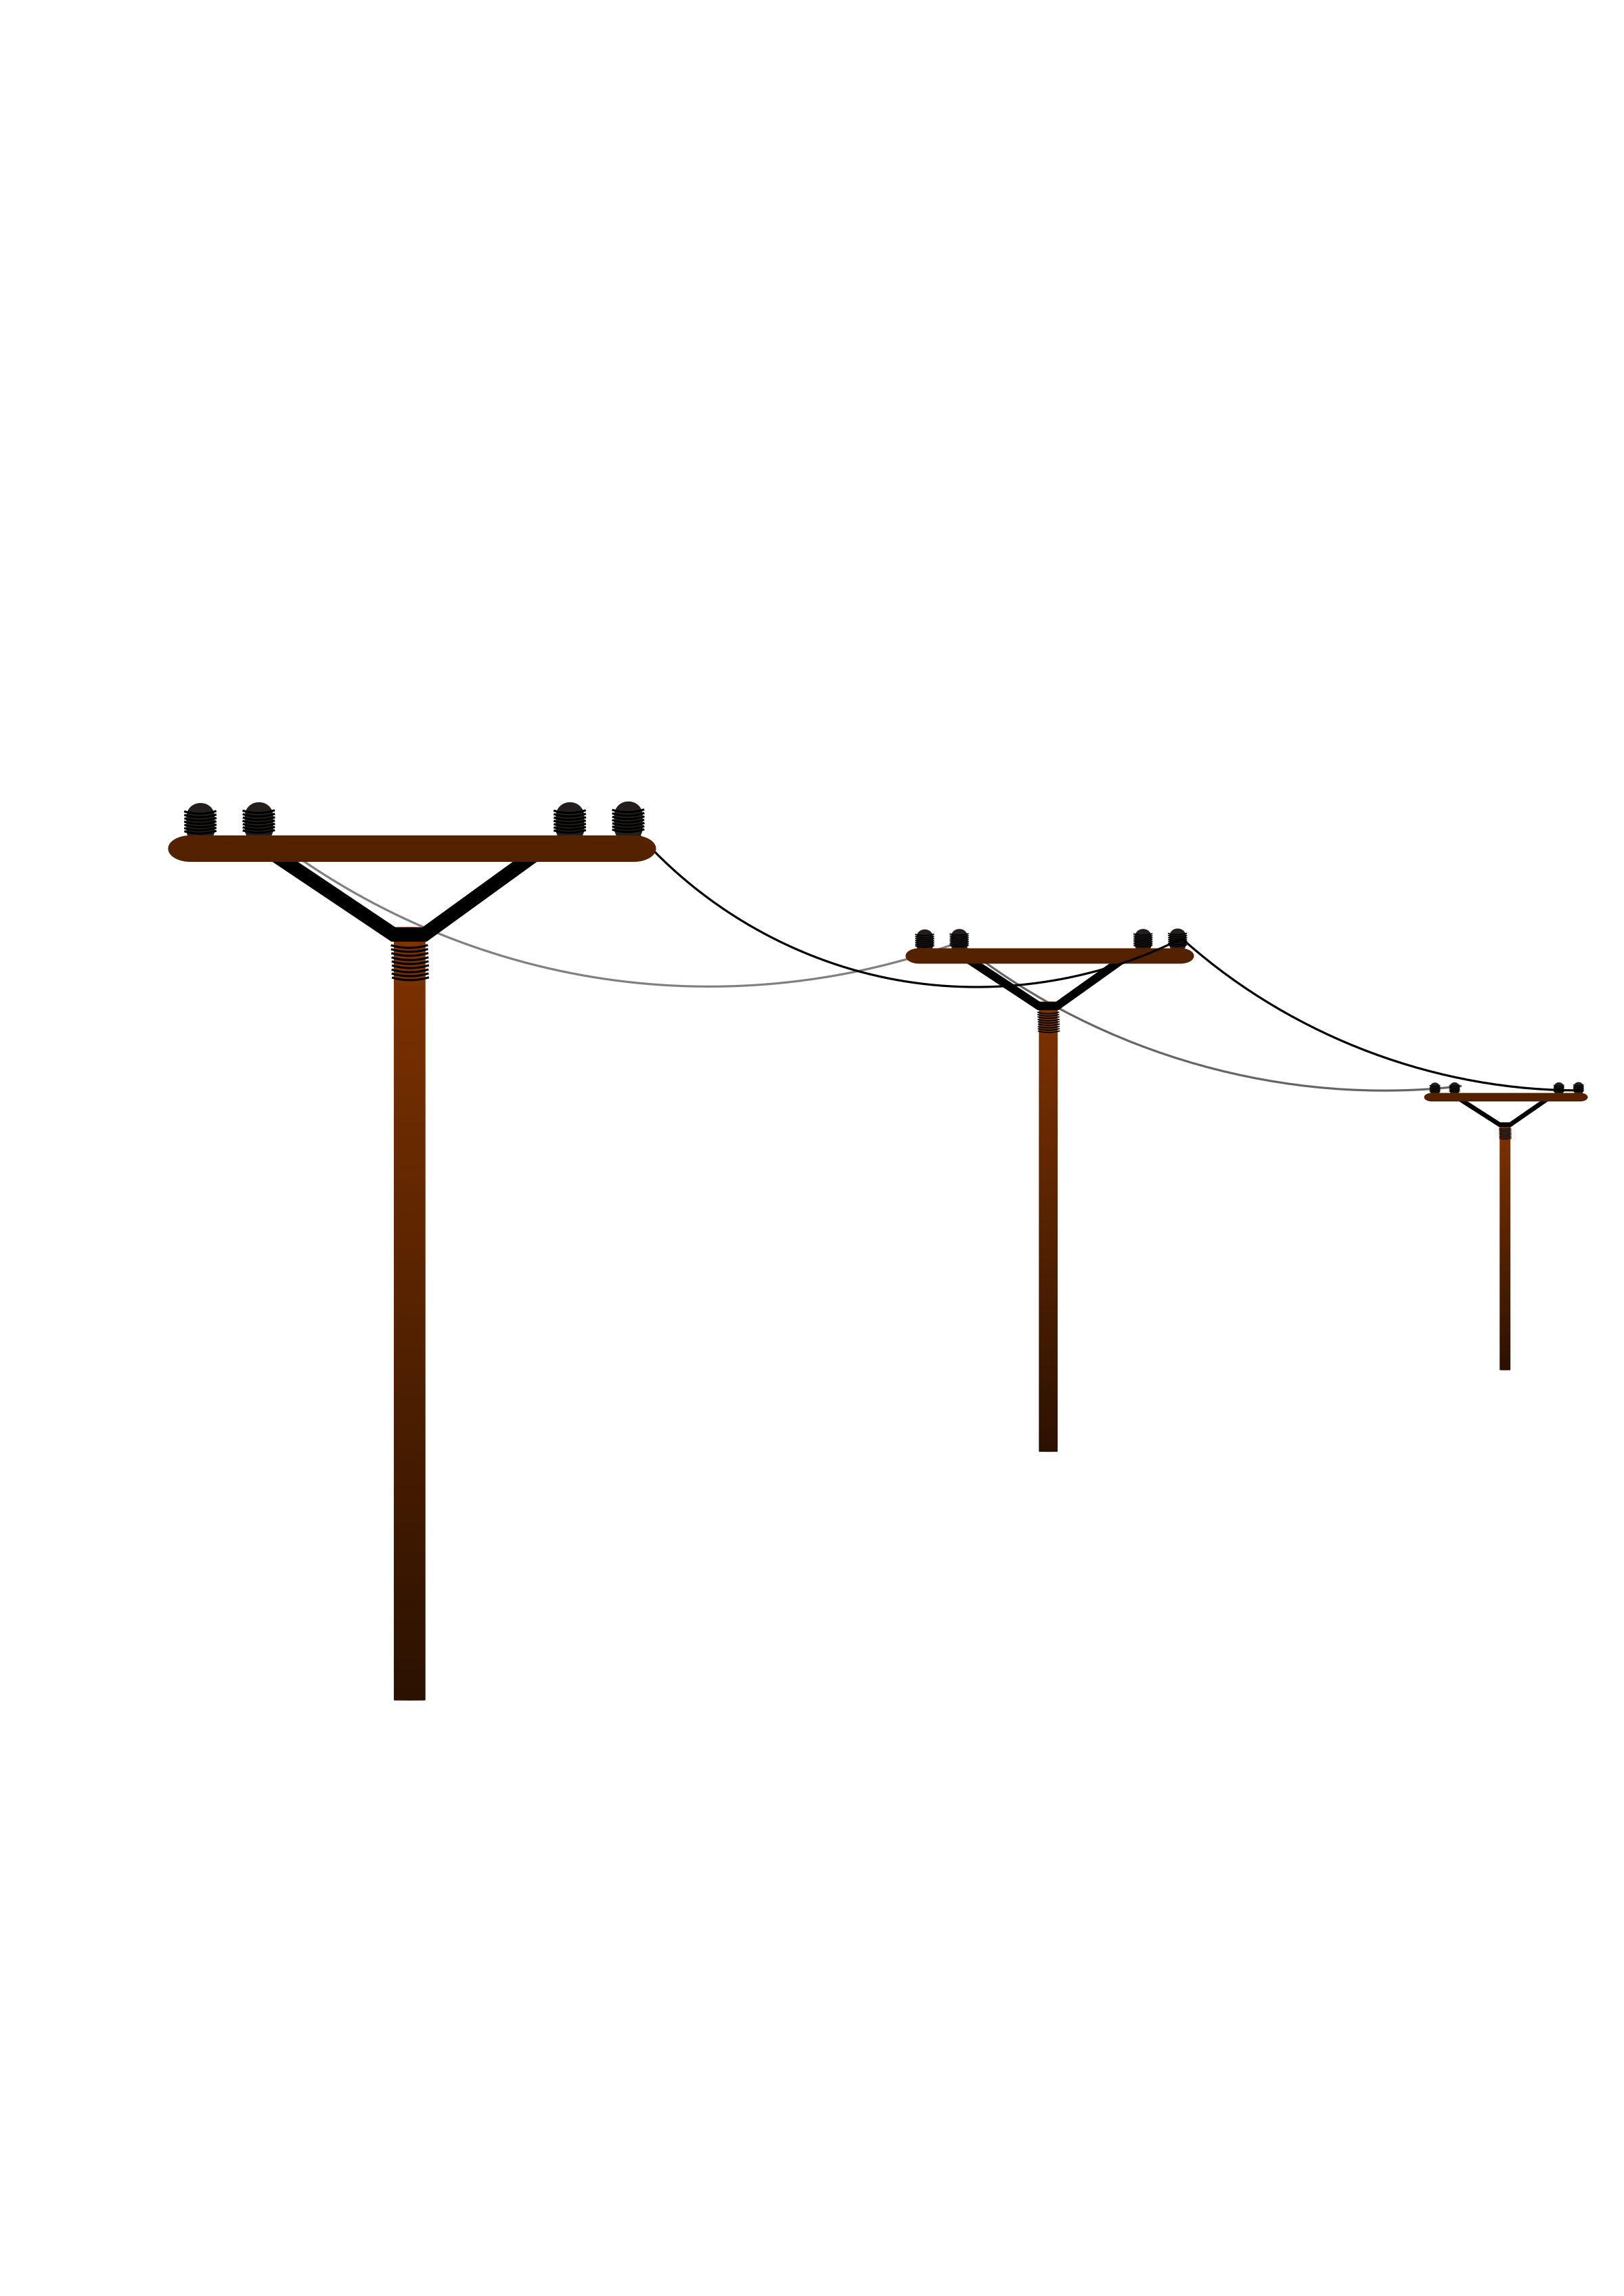 Vector power electricity background. Collection of free electricities